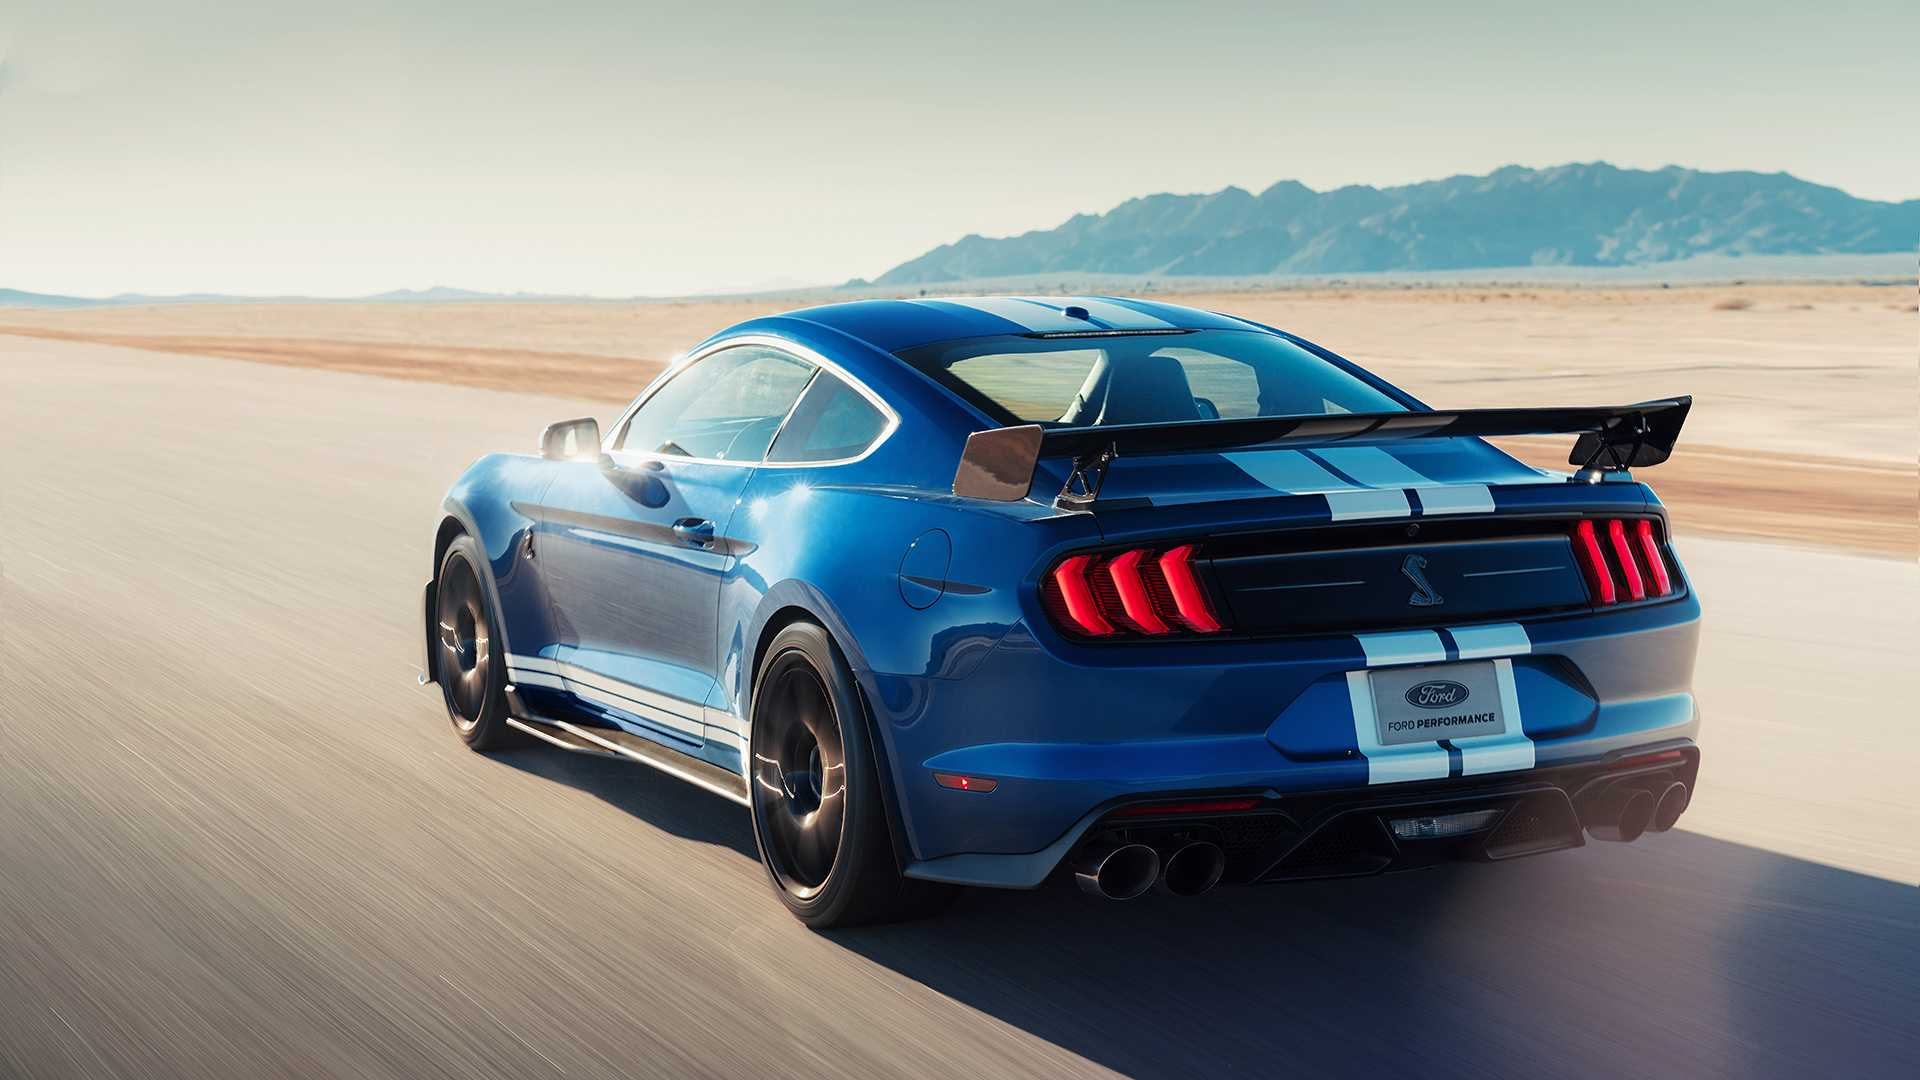 34 The Best 2020 Ford Shelby Gt500 Price History